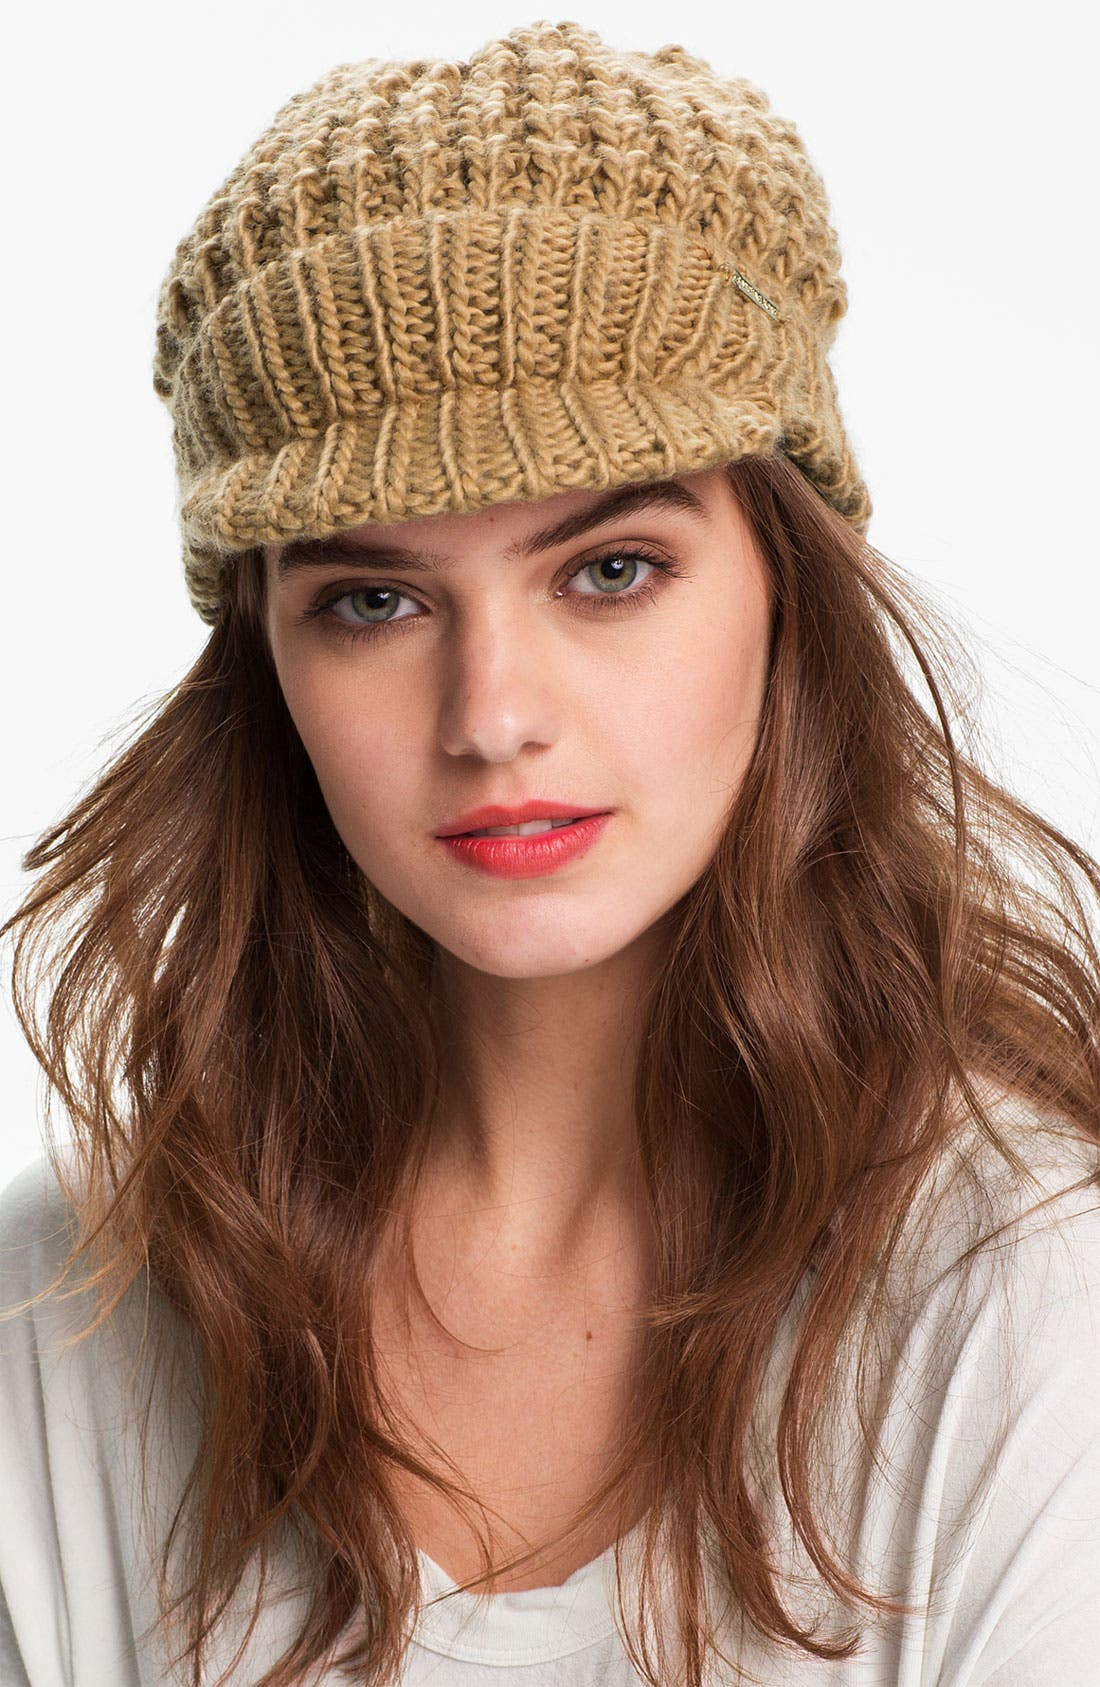 Alternate Image 1 Selected - MICHAEL Michael Kors 'Peak' Hat